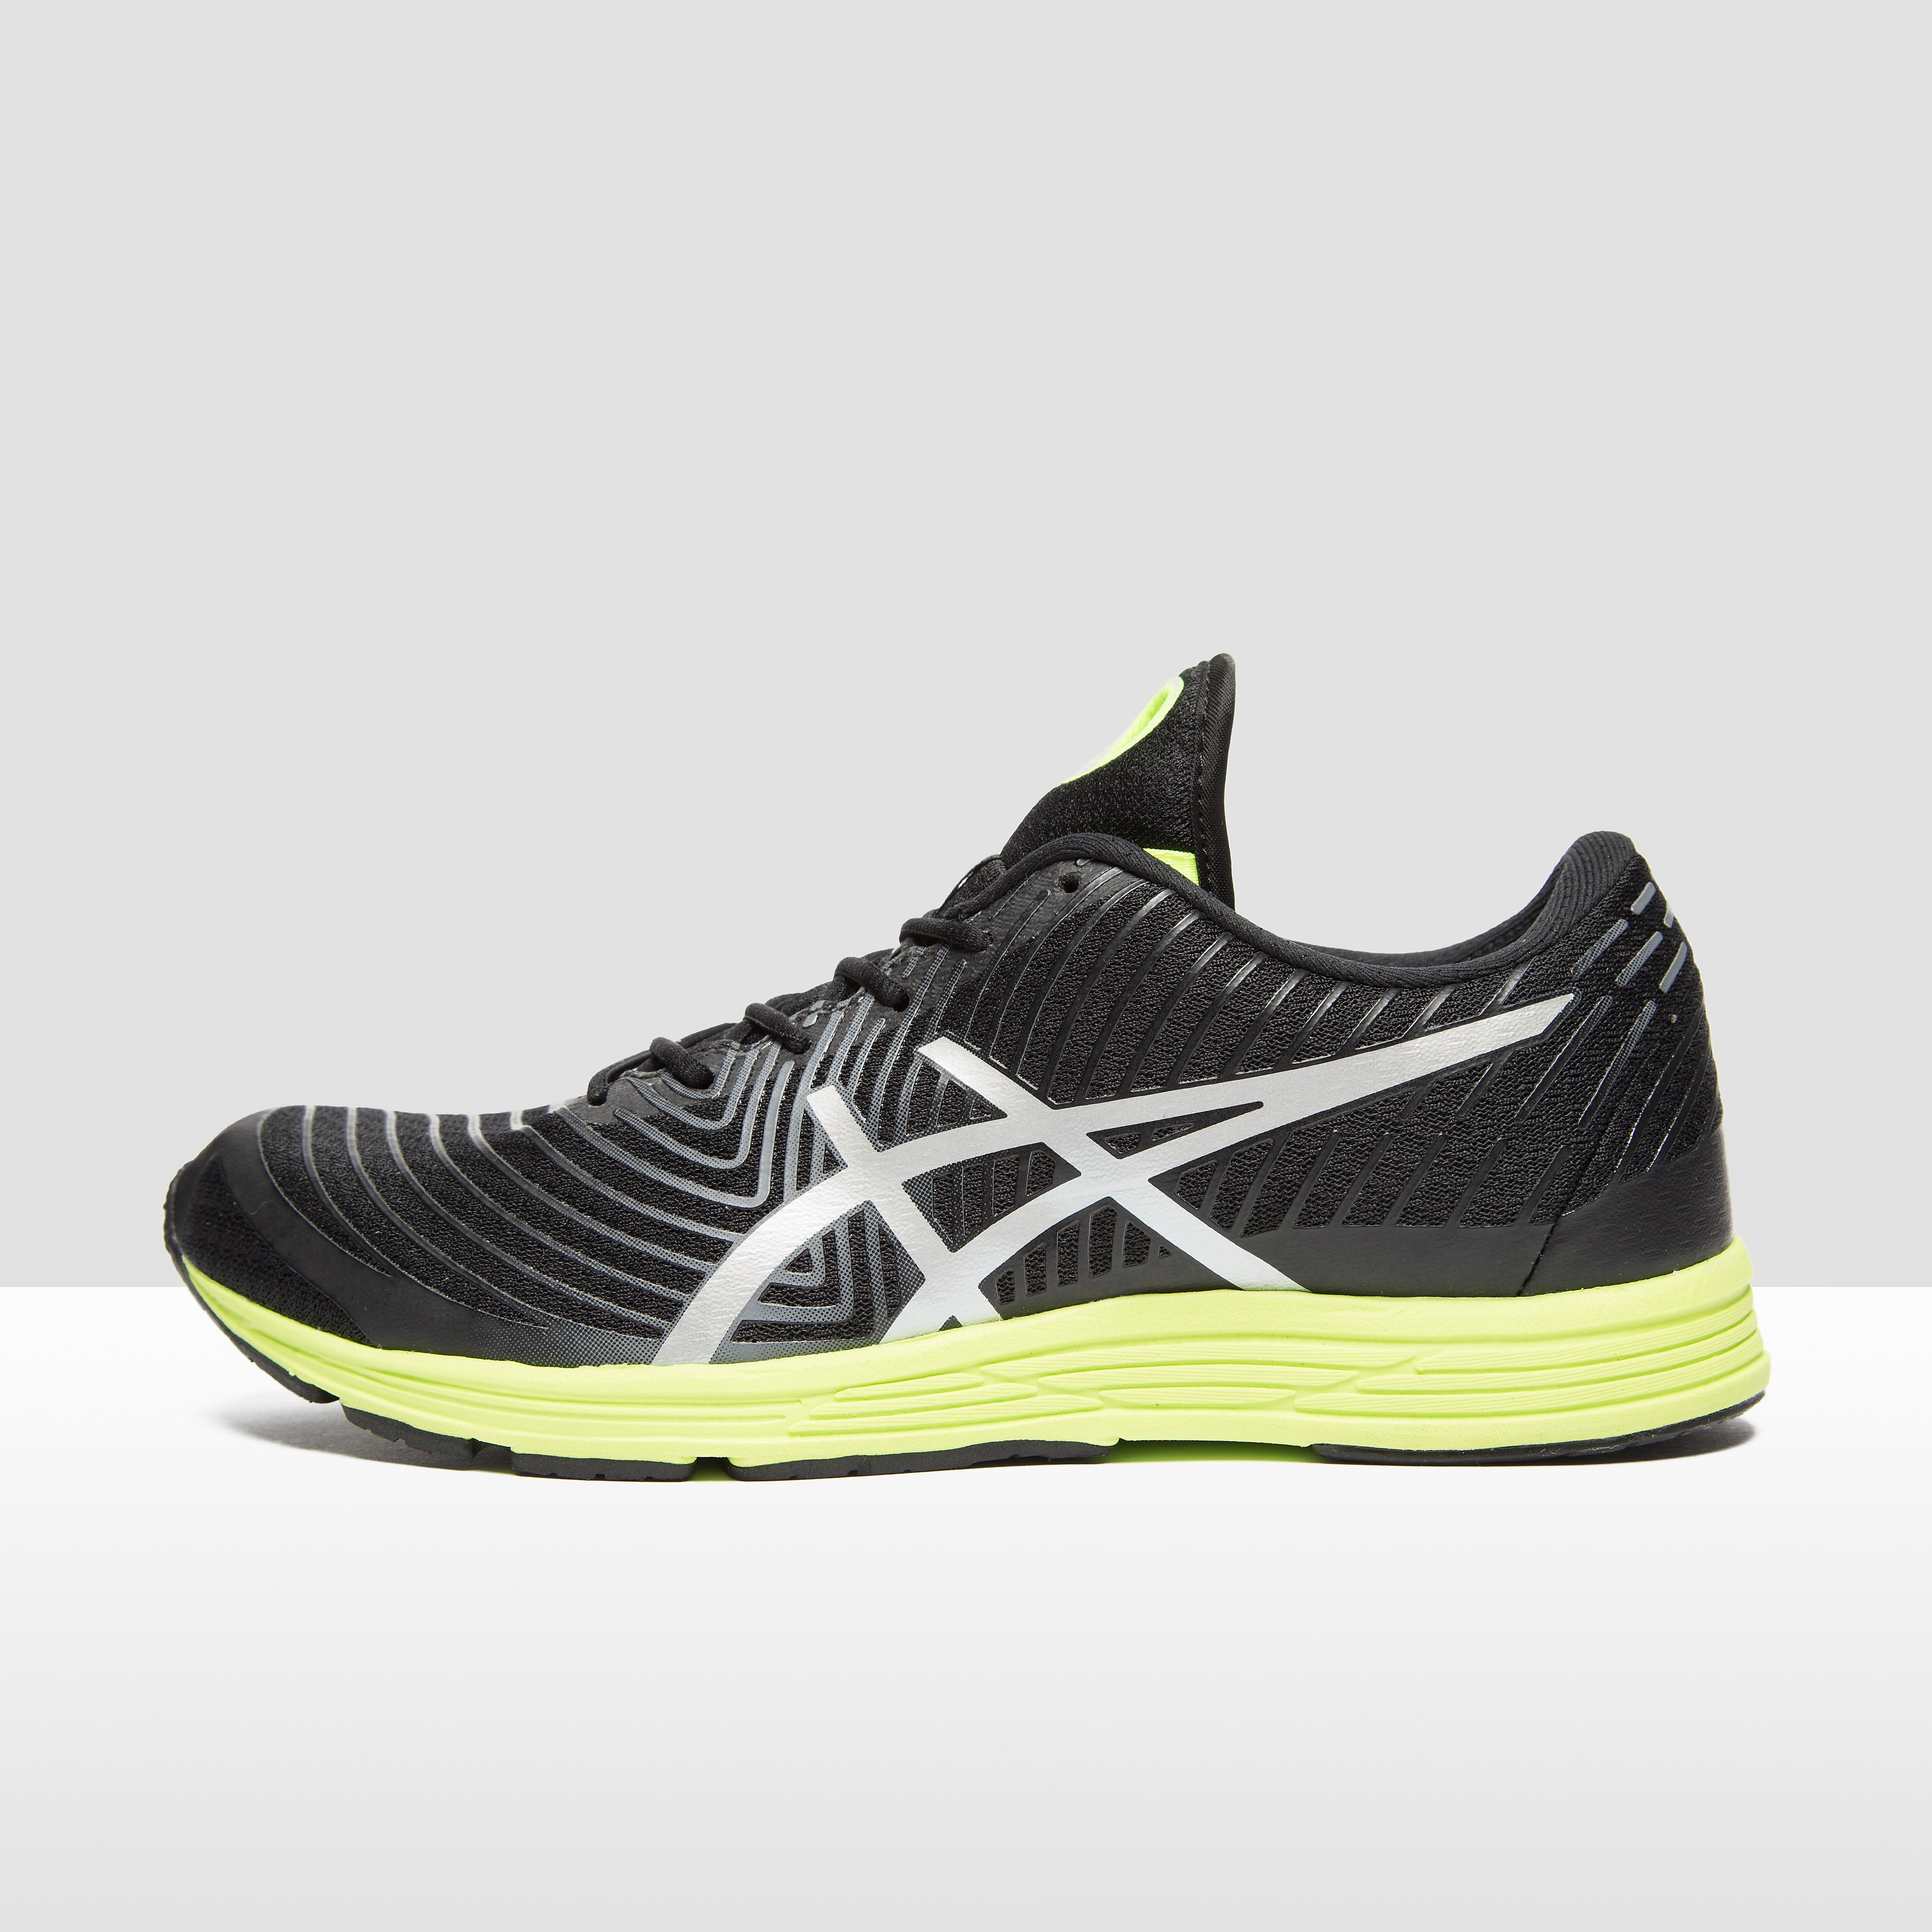 Asics Gel-Hyper Tri 3 men's running shoes